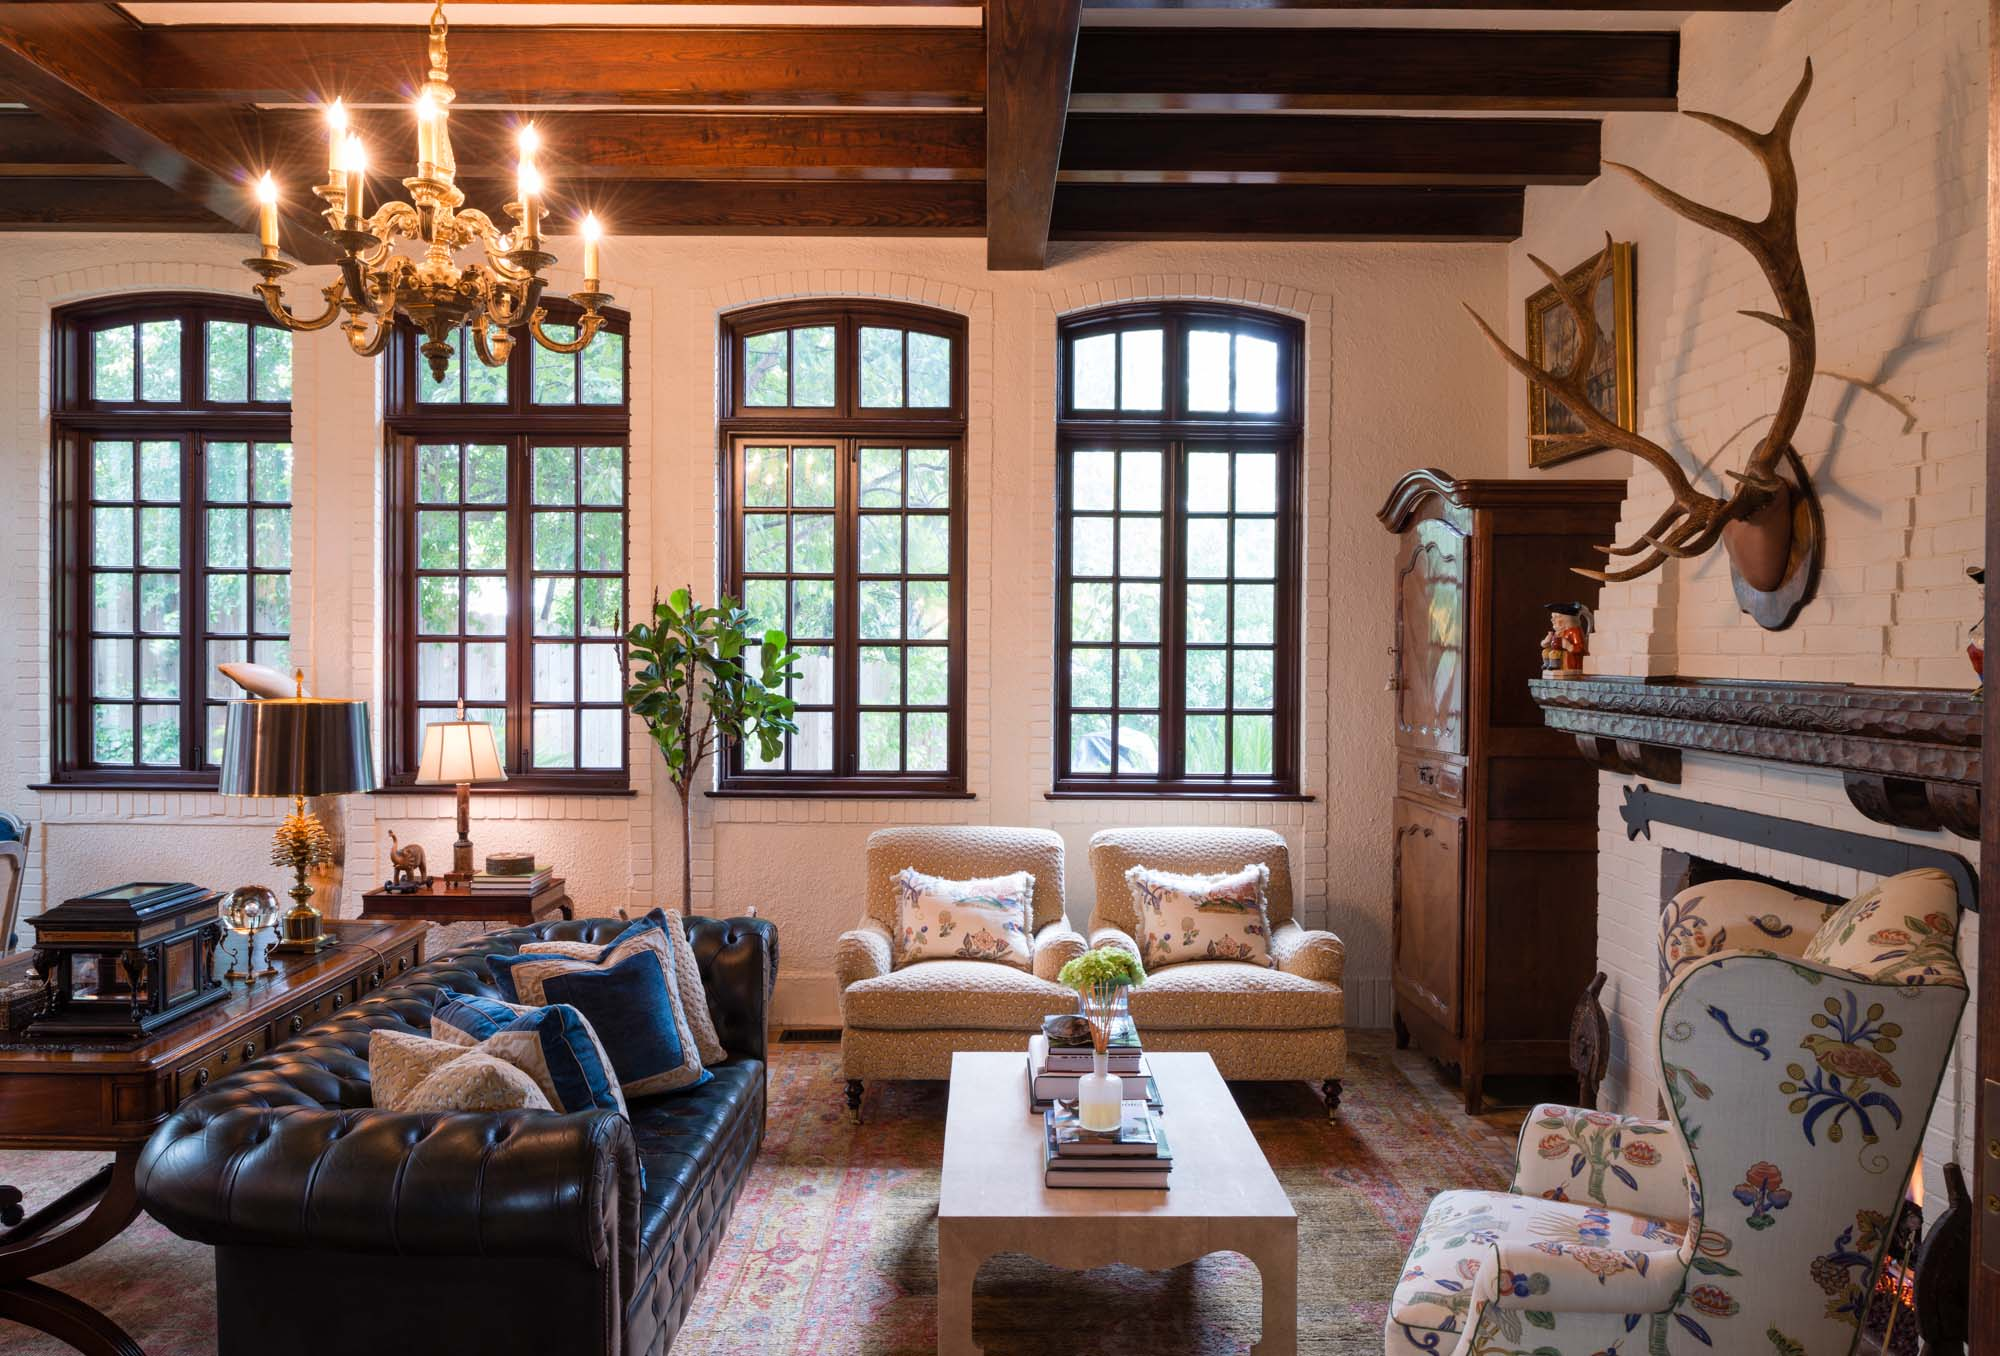 Adorable 90 tudor interiors design inspiration of eye for design decorating tudor style Tudor home interior design ideas